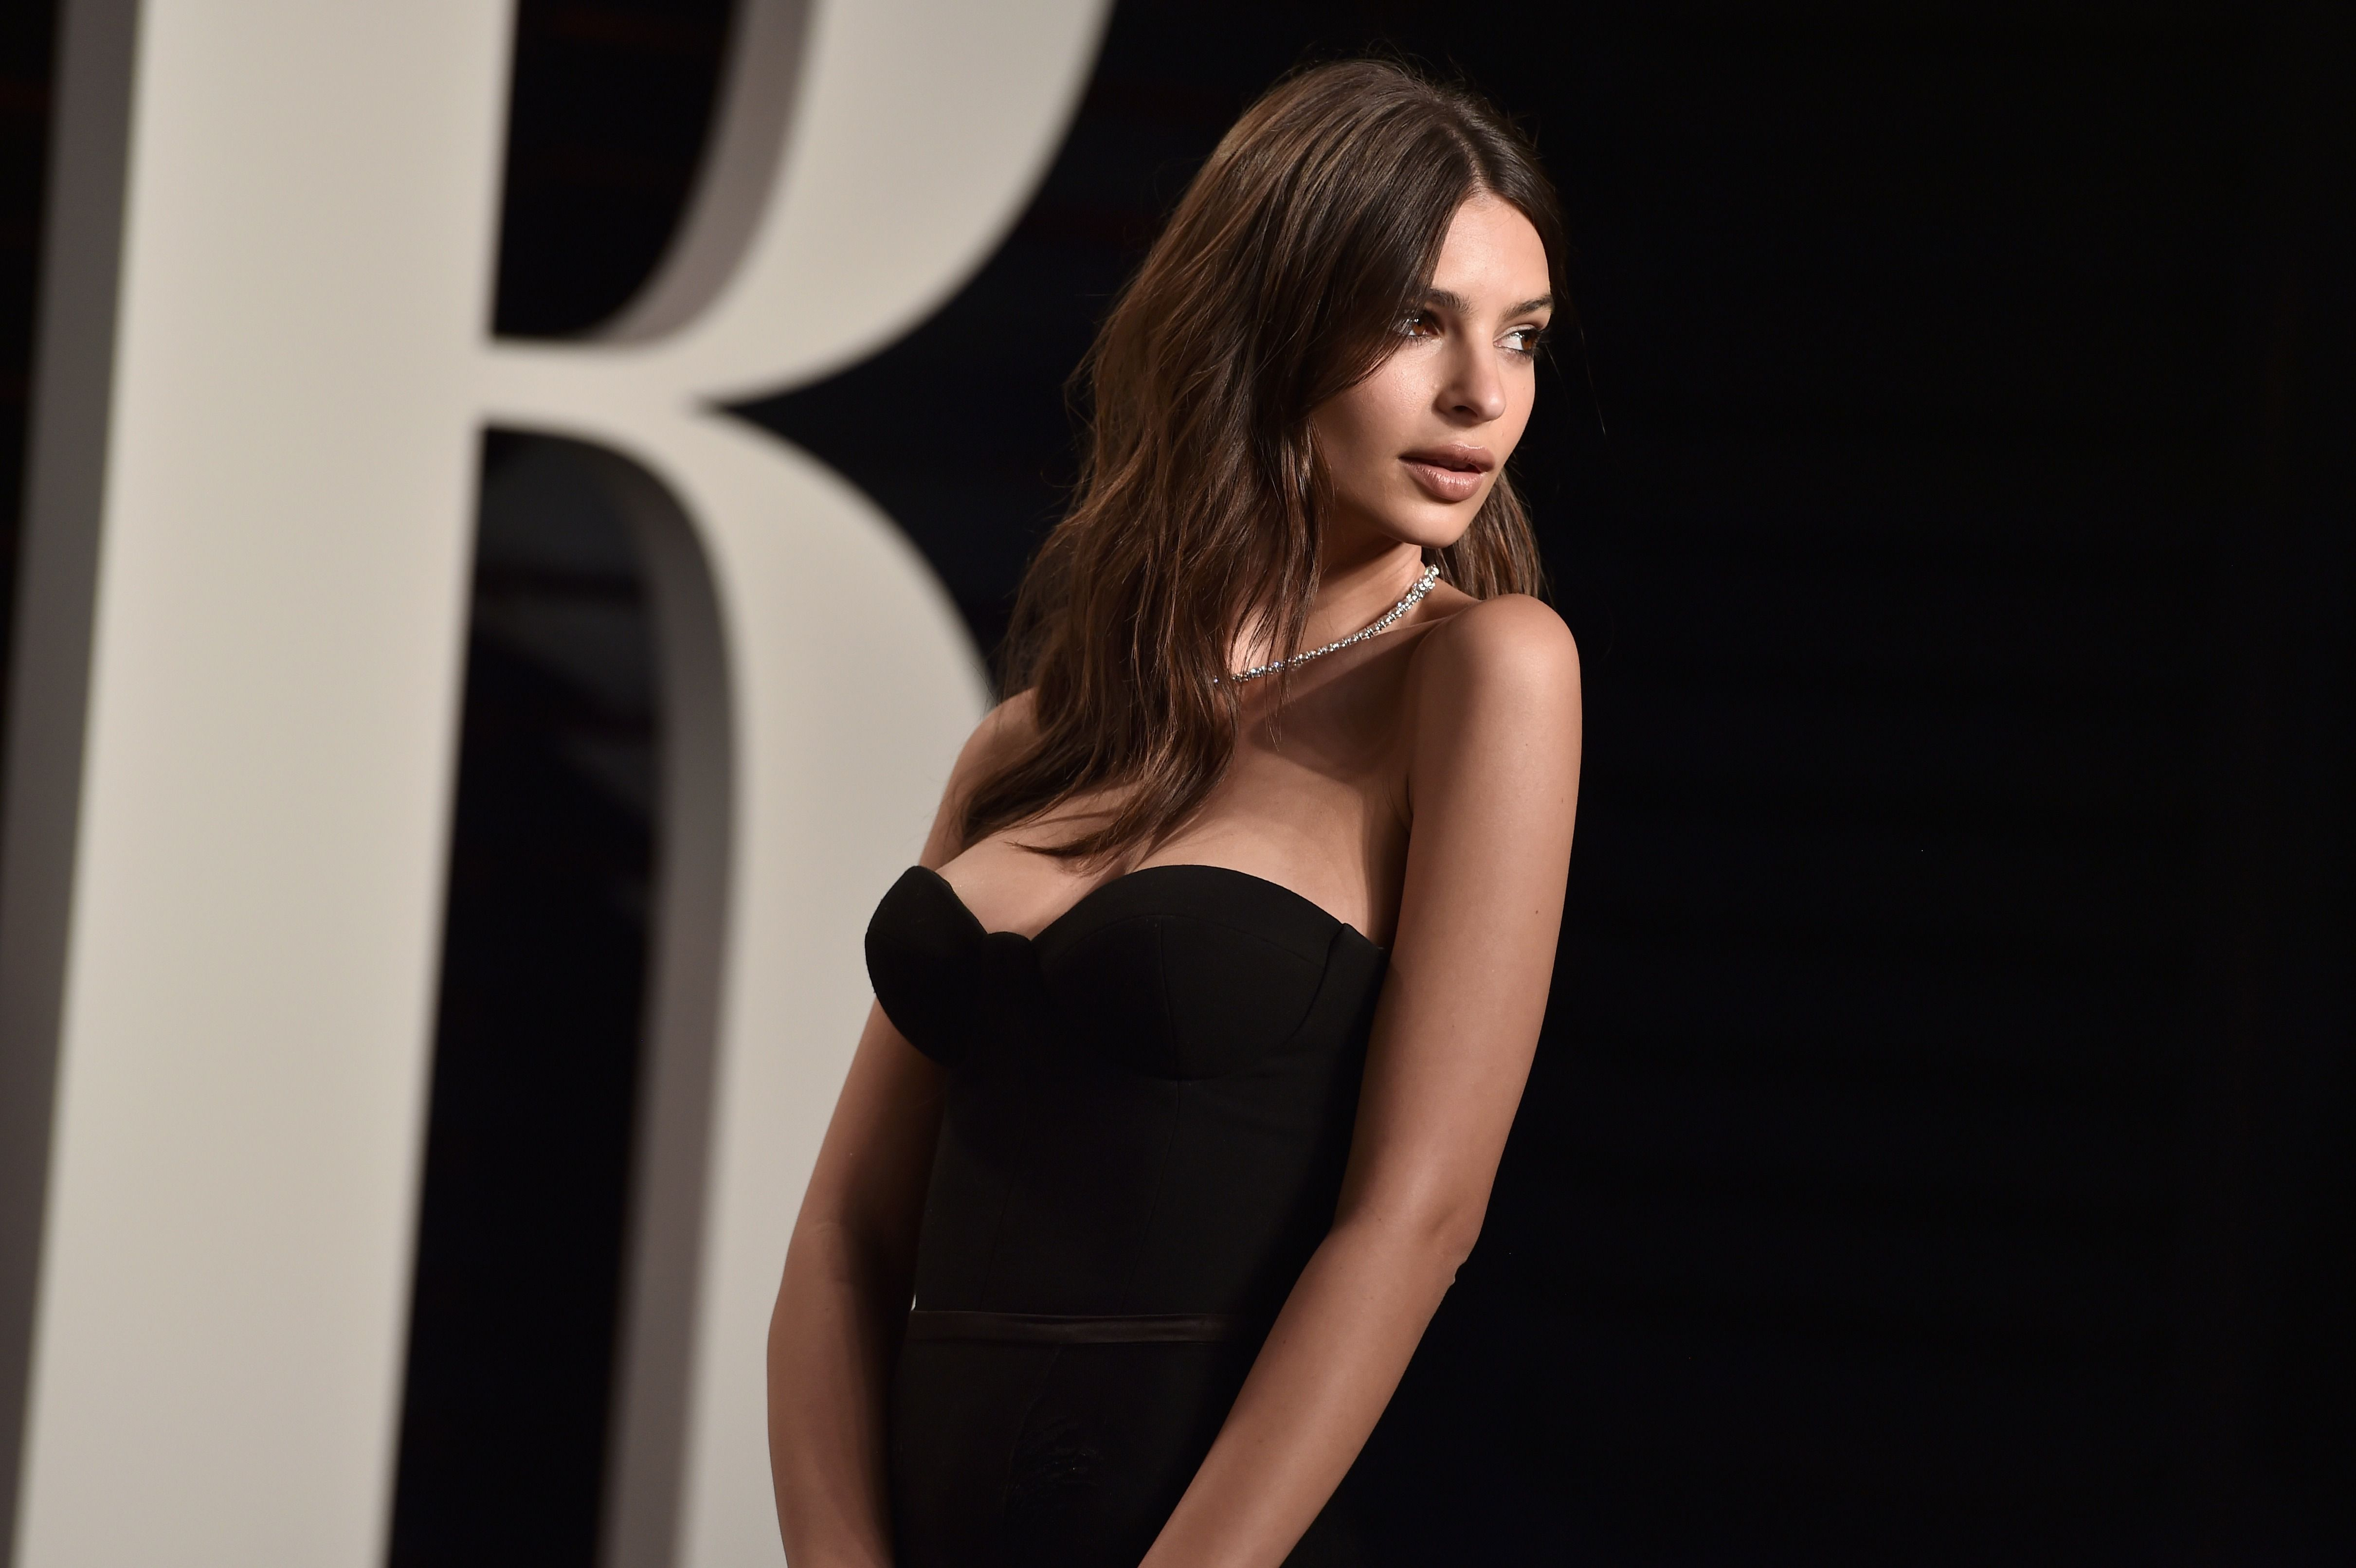 Early Days Of Emily Ratajkowski Captured In Very NSFW Polaroid Series recommendations